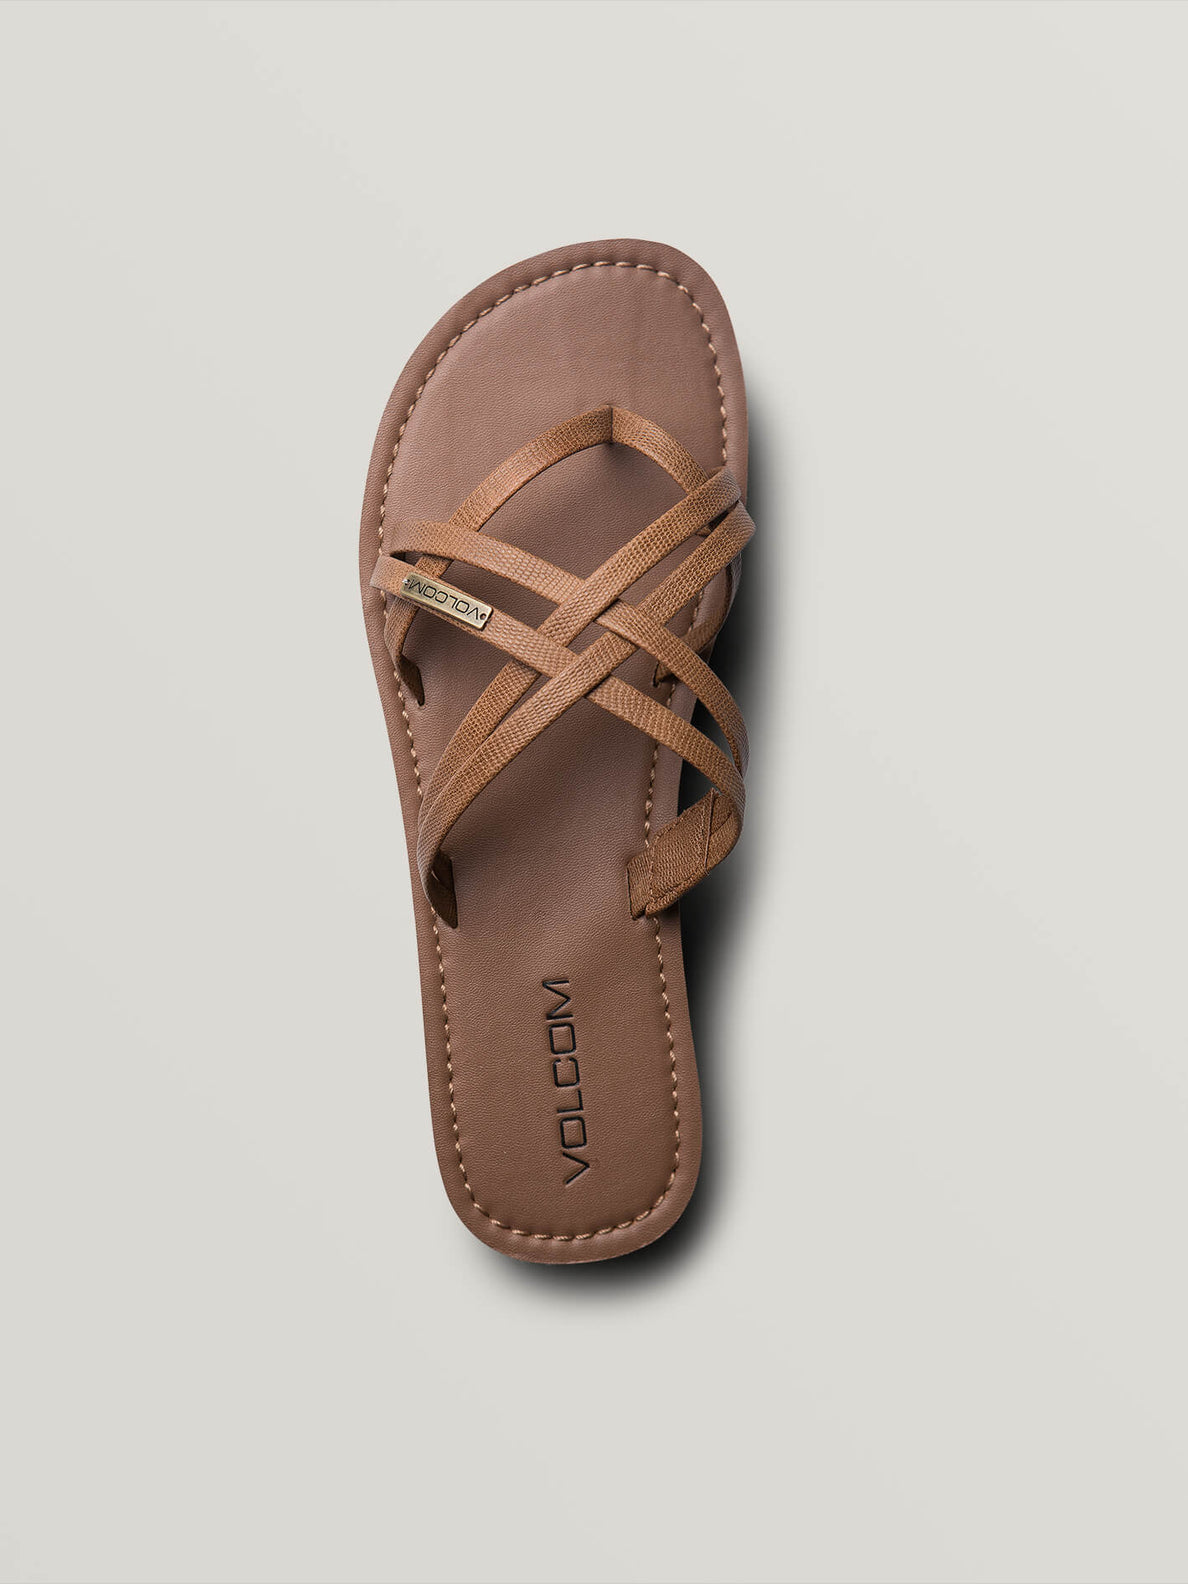 Strap Happy Sandals In Cognac, Alternate View